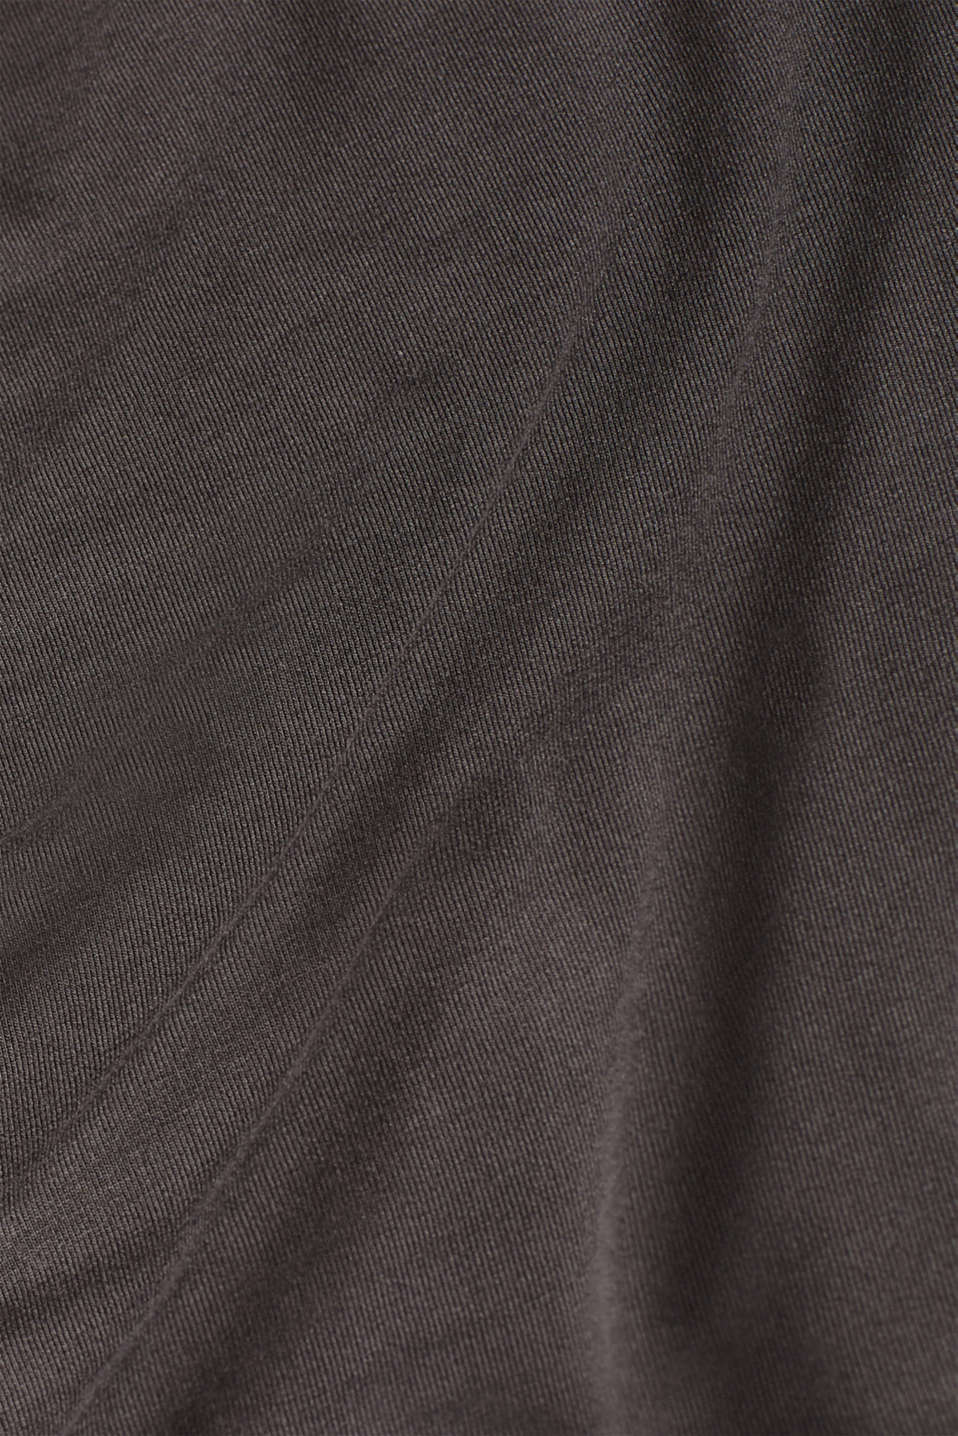 Stretch top with adjustable spaghetti straps, DARK GREY 4, detail image number 4